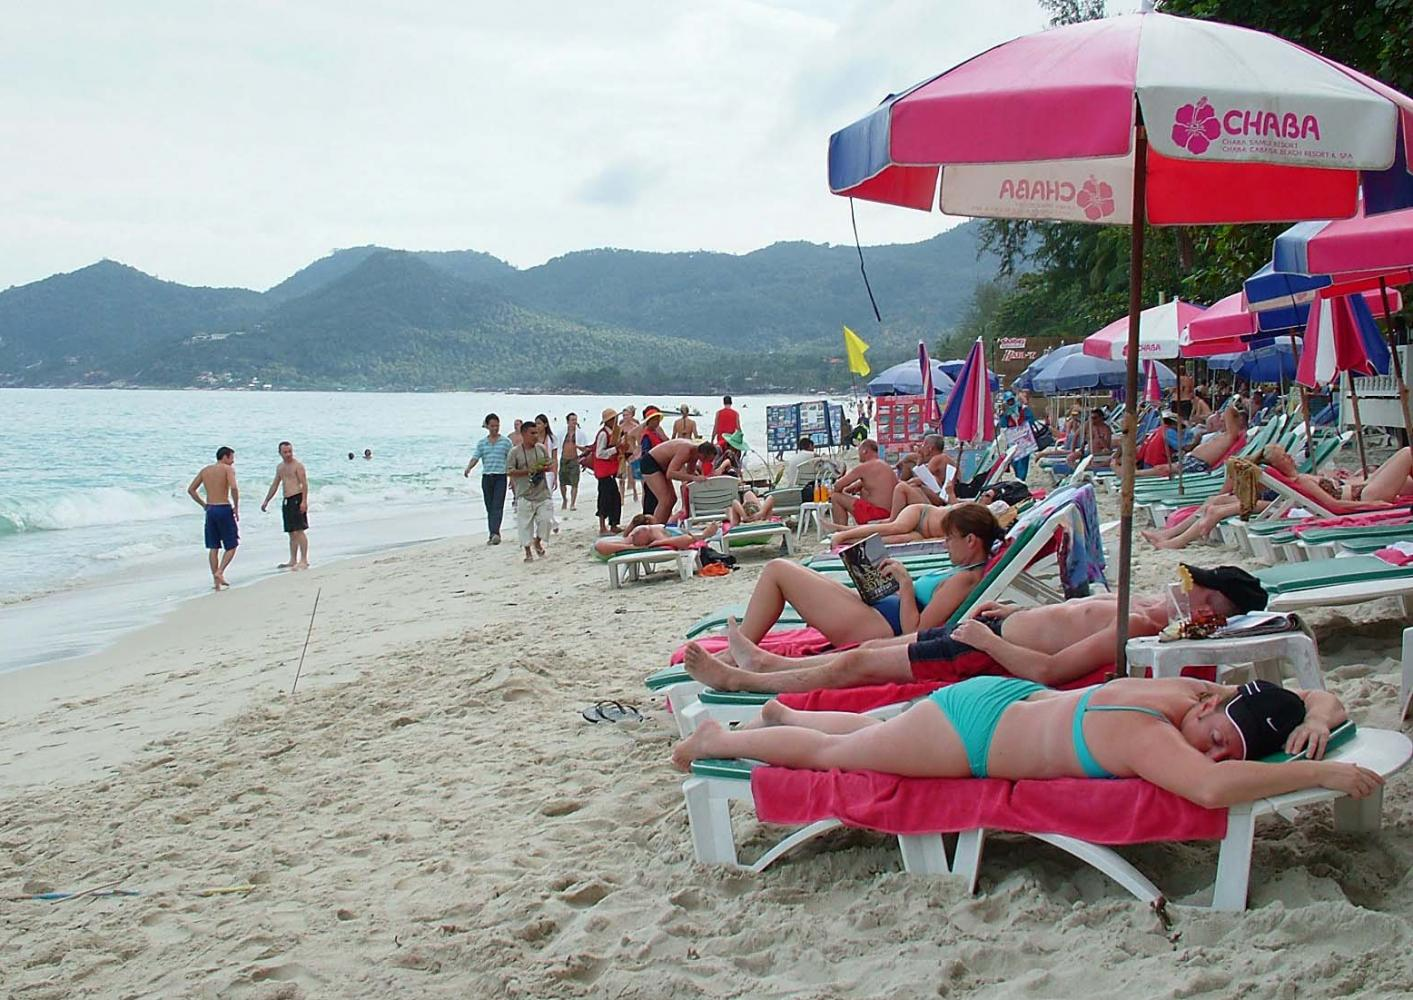 Foreign tourists lounge on Chaweng beach on Koh Samui. (Photo by Supapong Chaolan)